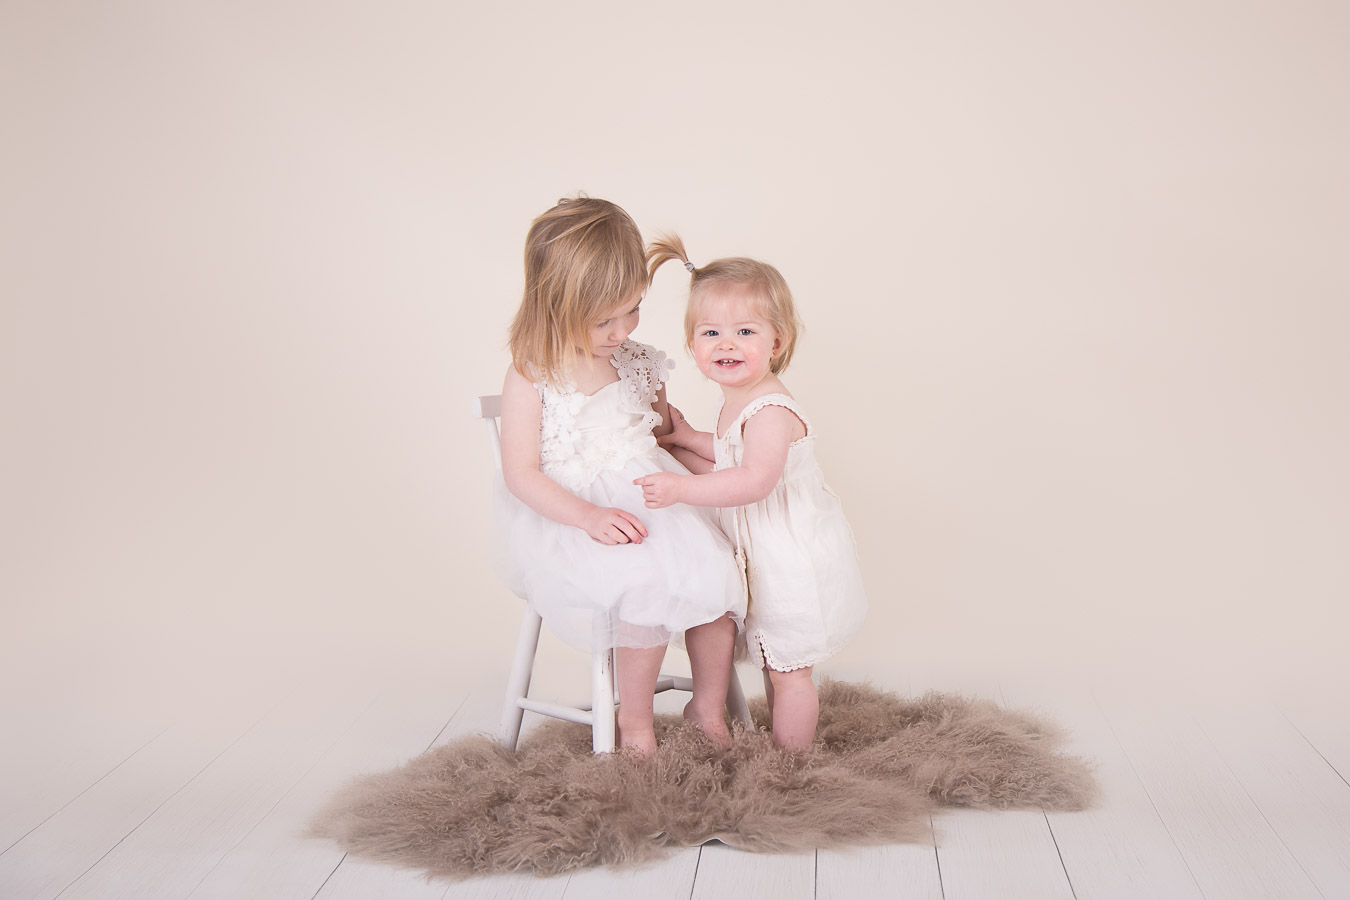 Image of 2 sisters from classic children session from Halifax Family Photographer